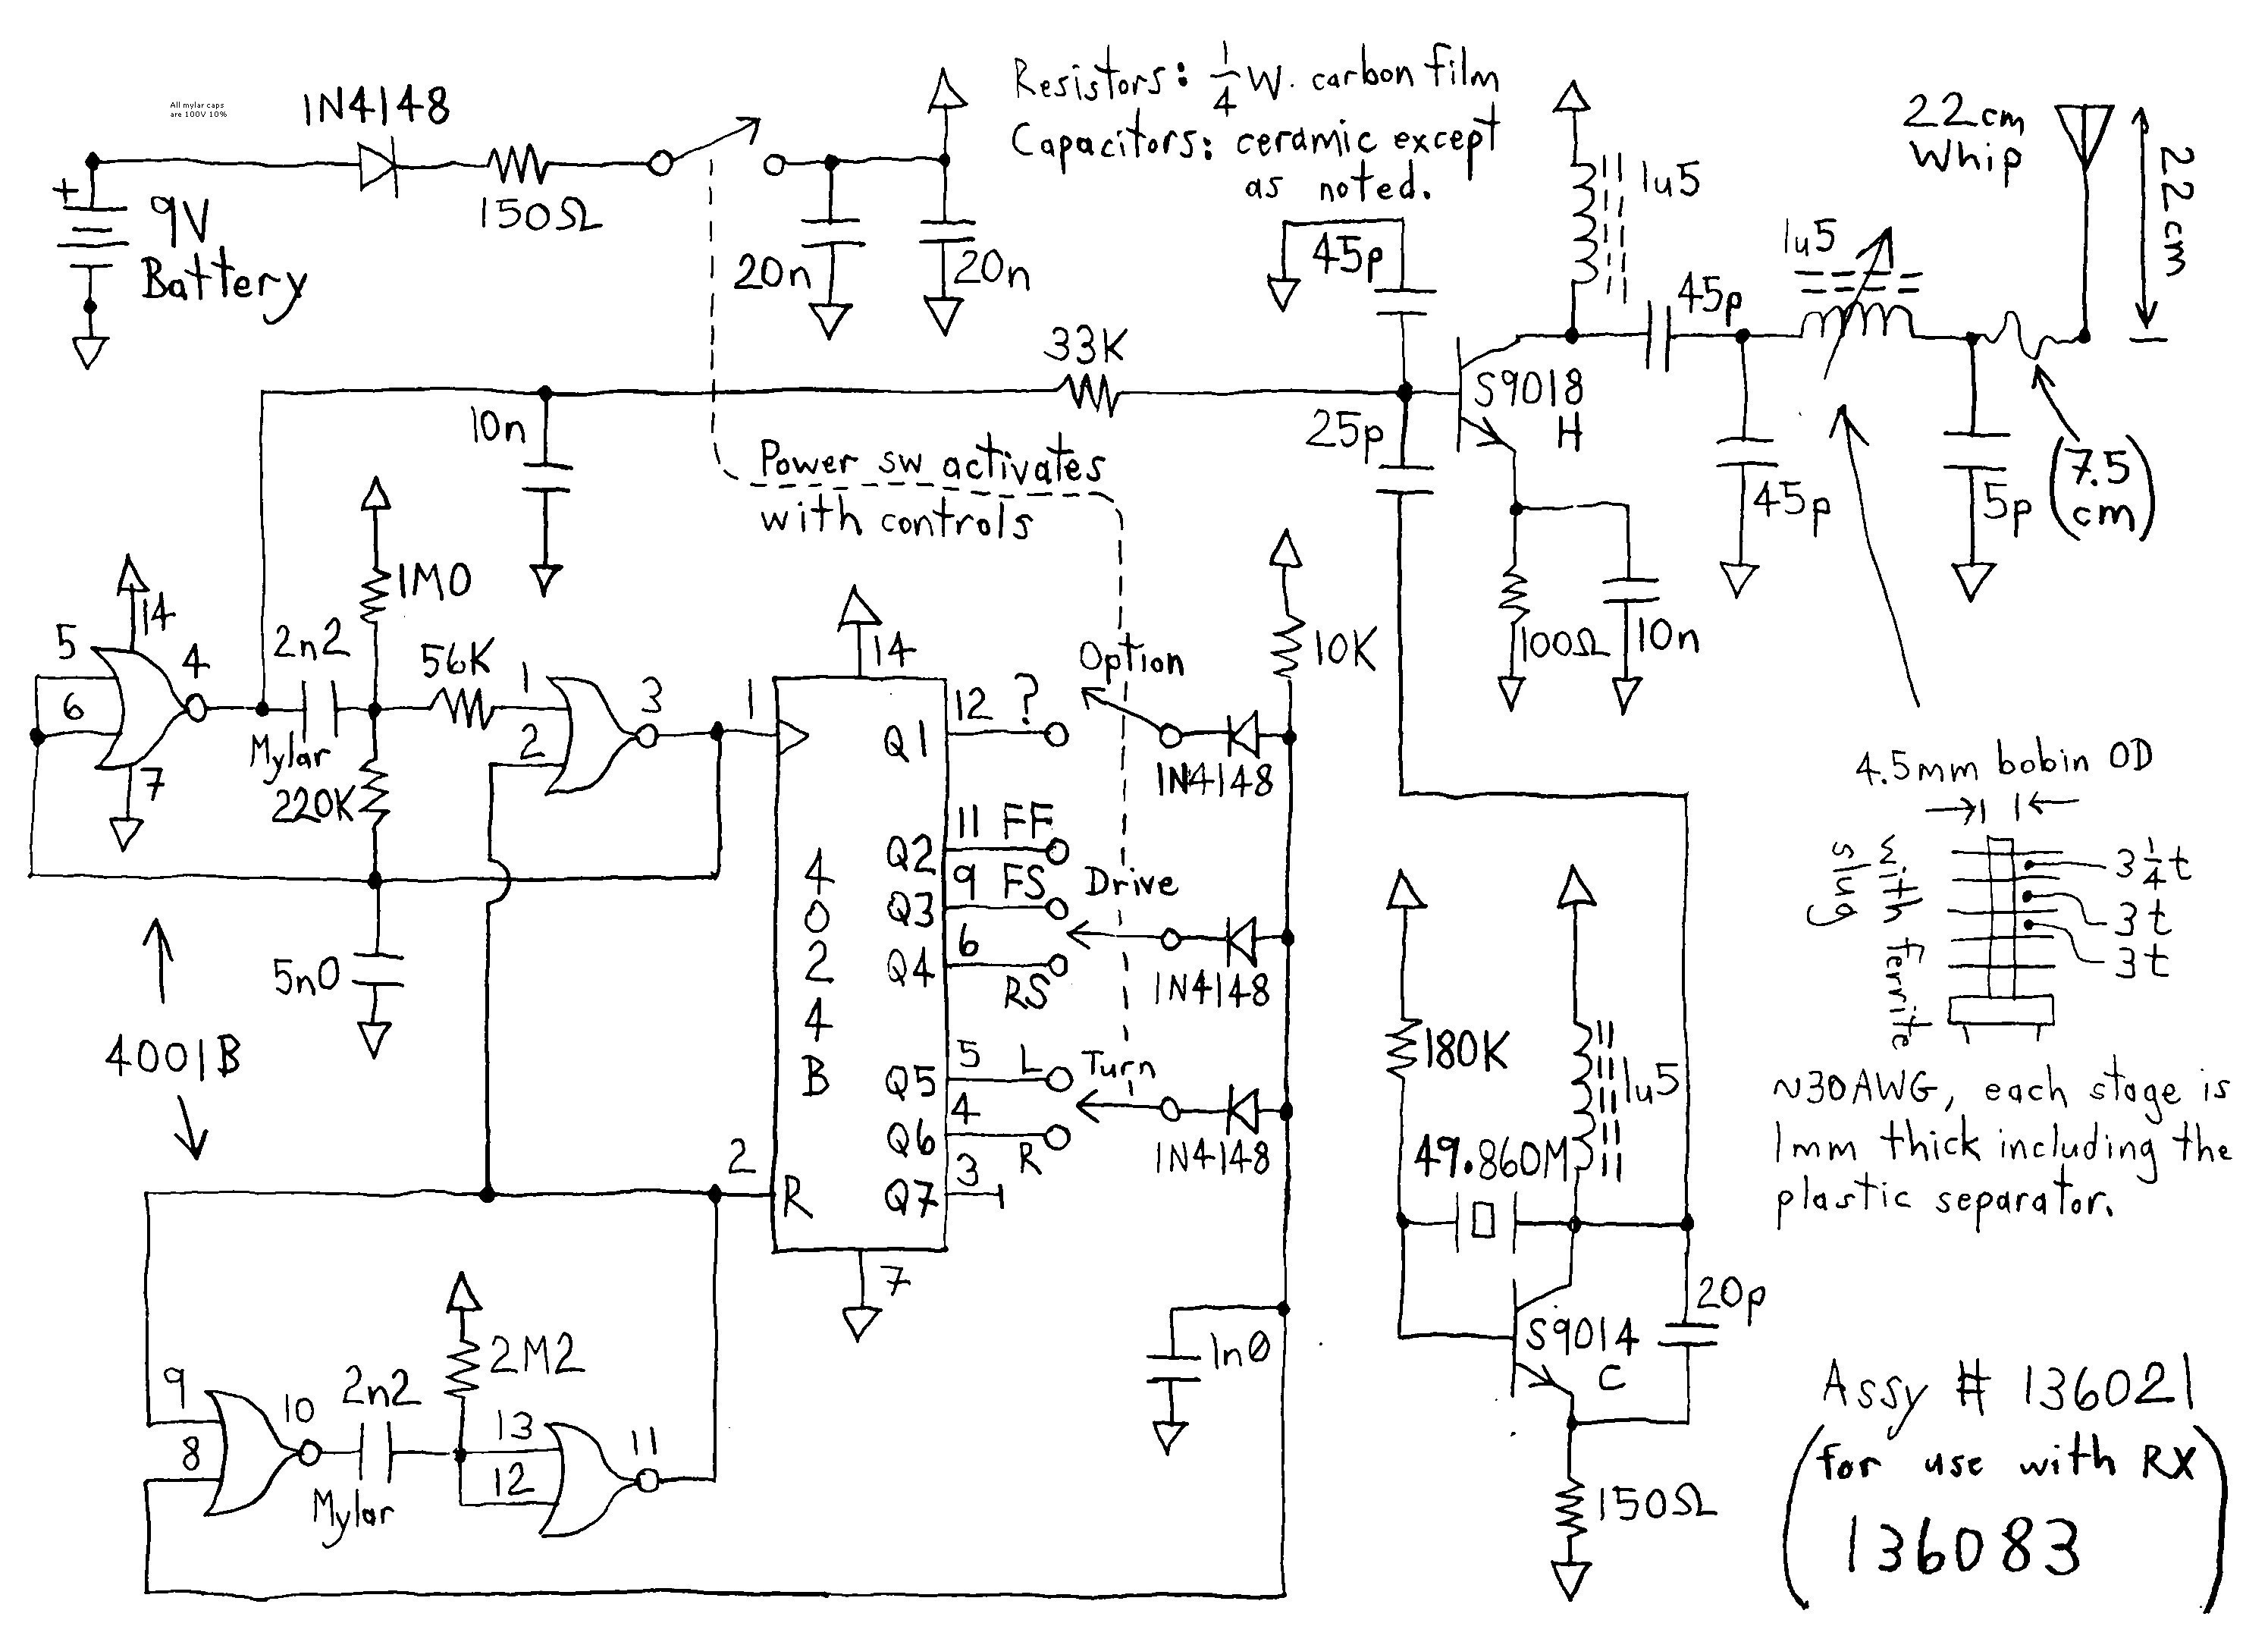 Gentex 313 Wiring Diagram Awesome Image 16 Pin Nissan Pathfinder Fresh Livina Rh Queen Int 1990 240sx